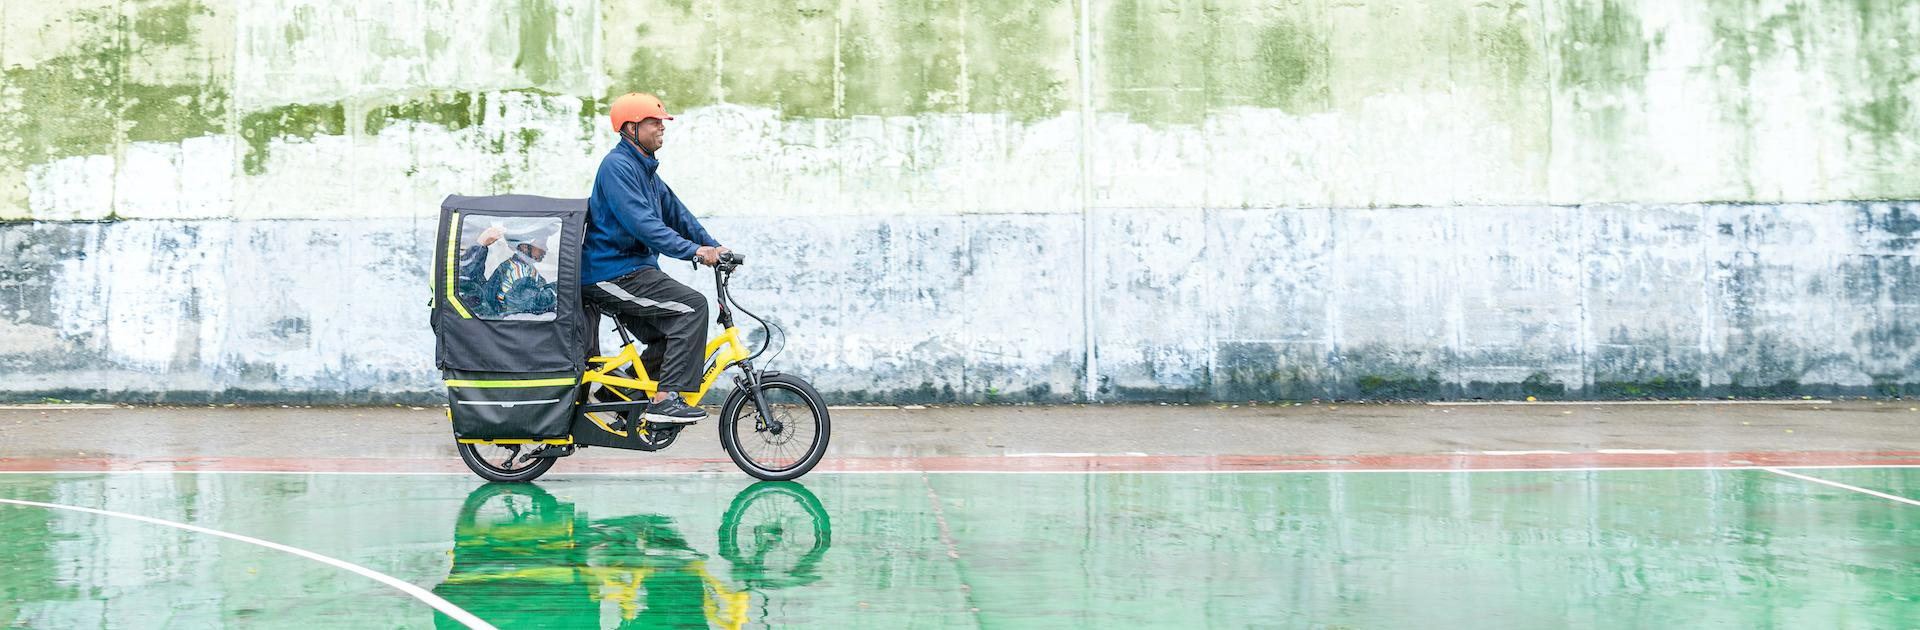 11 Expert Tips for E-Biking in the Rain